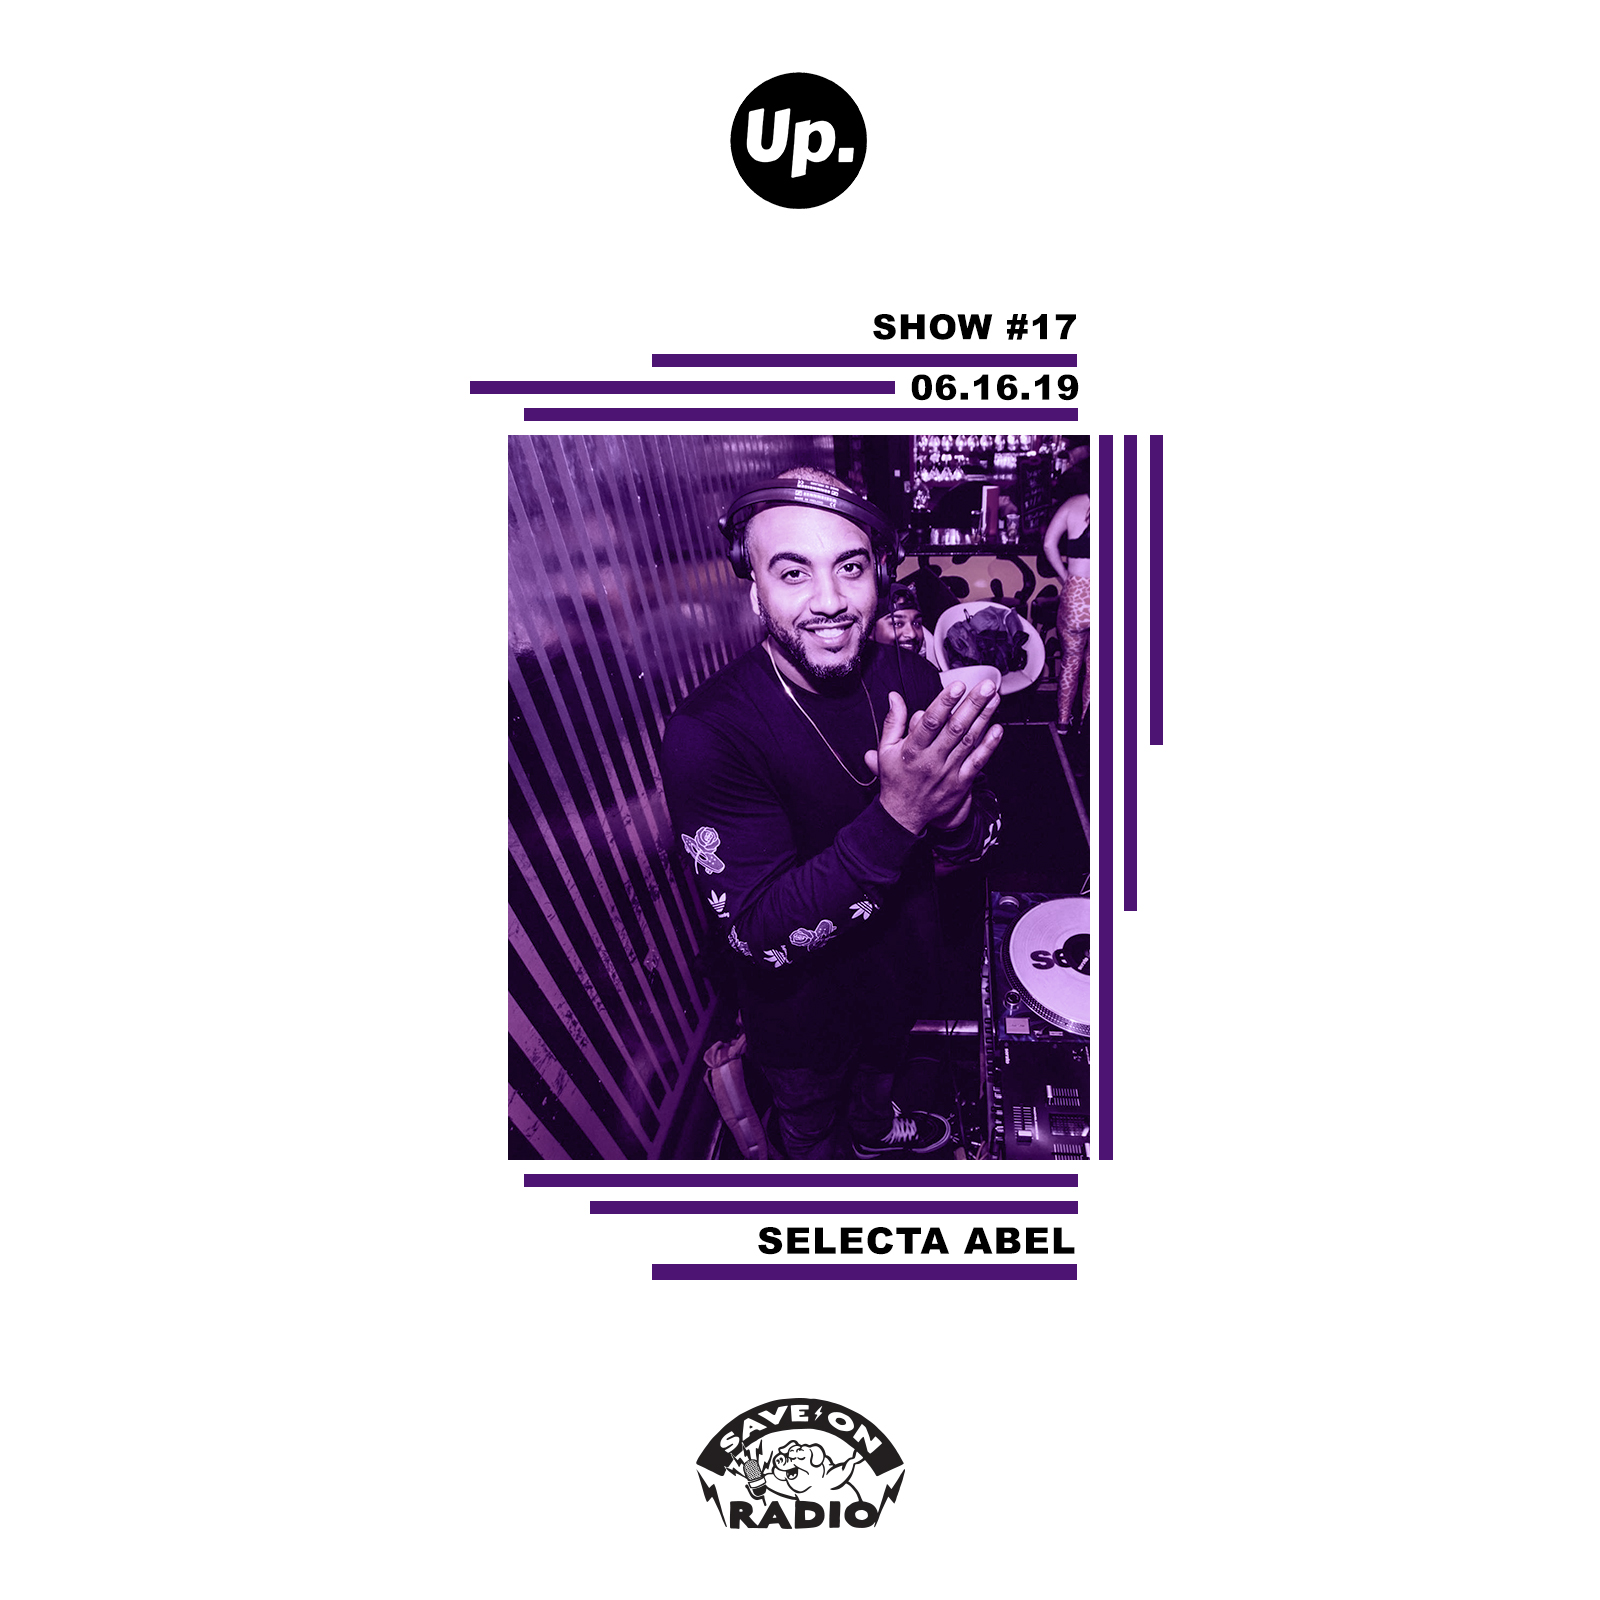 Show #17 featuring Selecta Abel